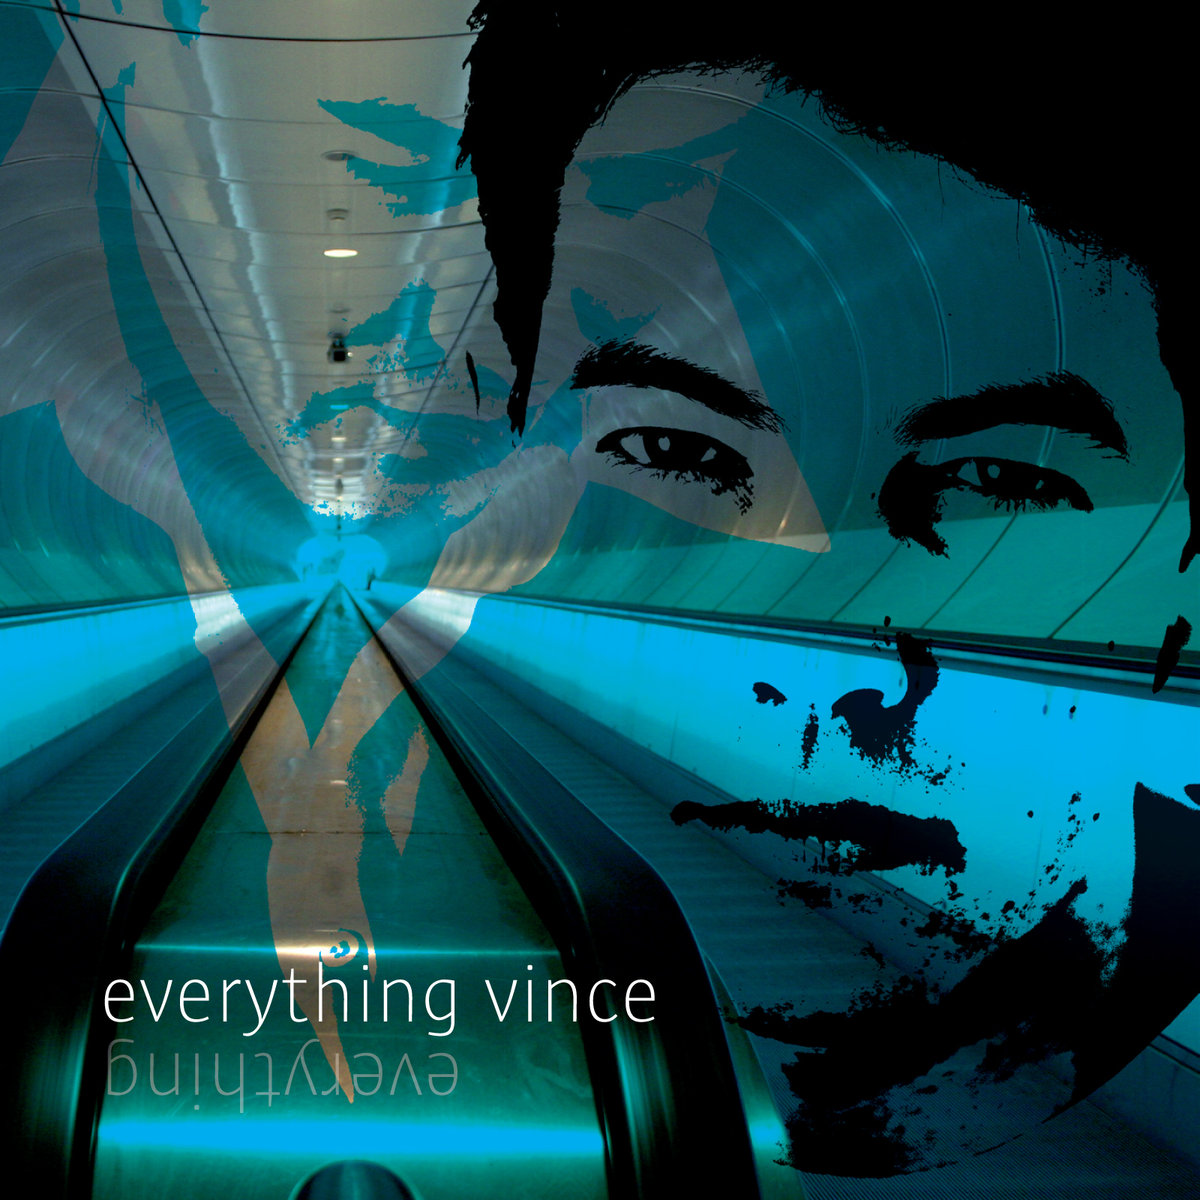 Vince - Upcomingstorms @ 'Everything' album (pop, pop punk)